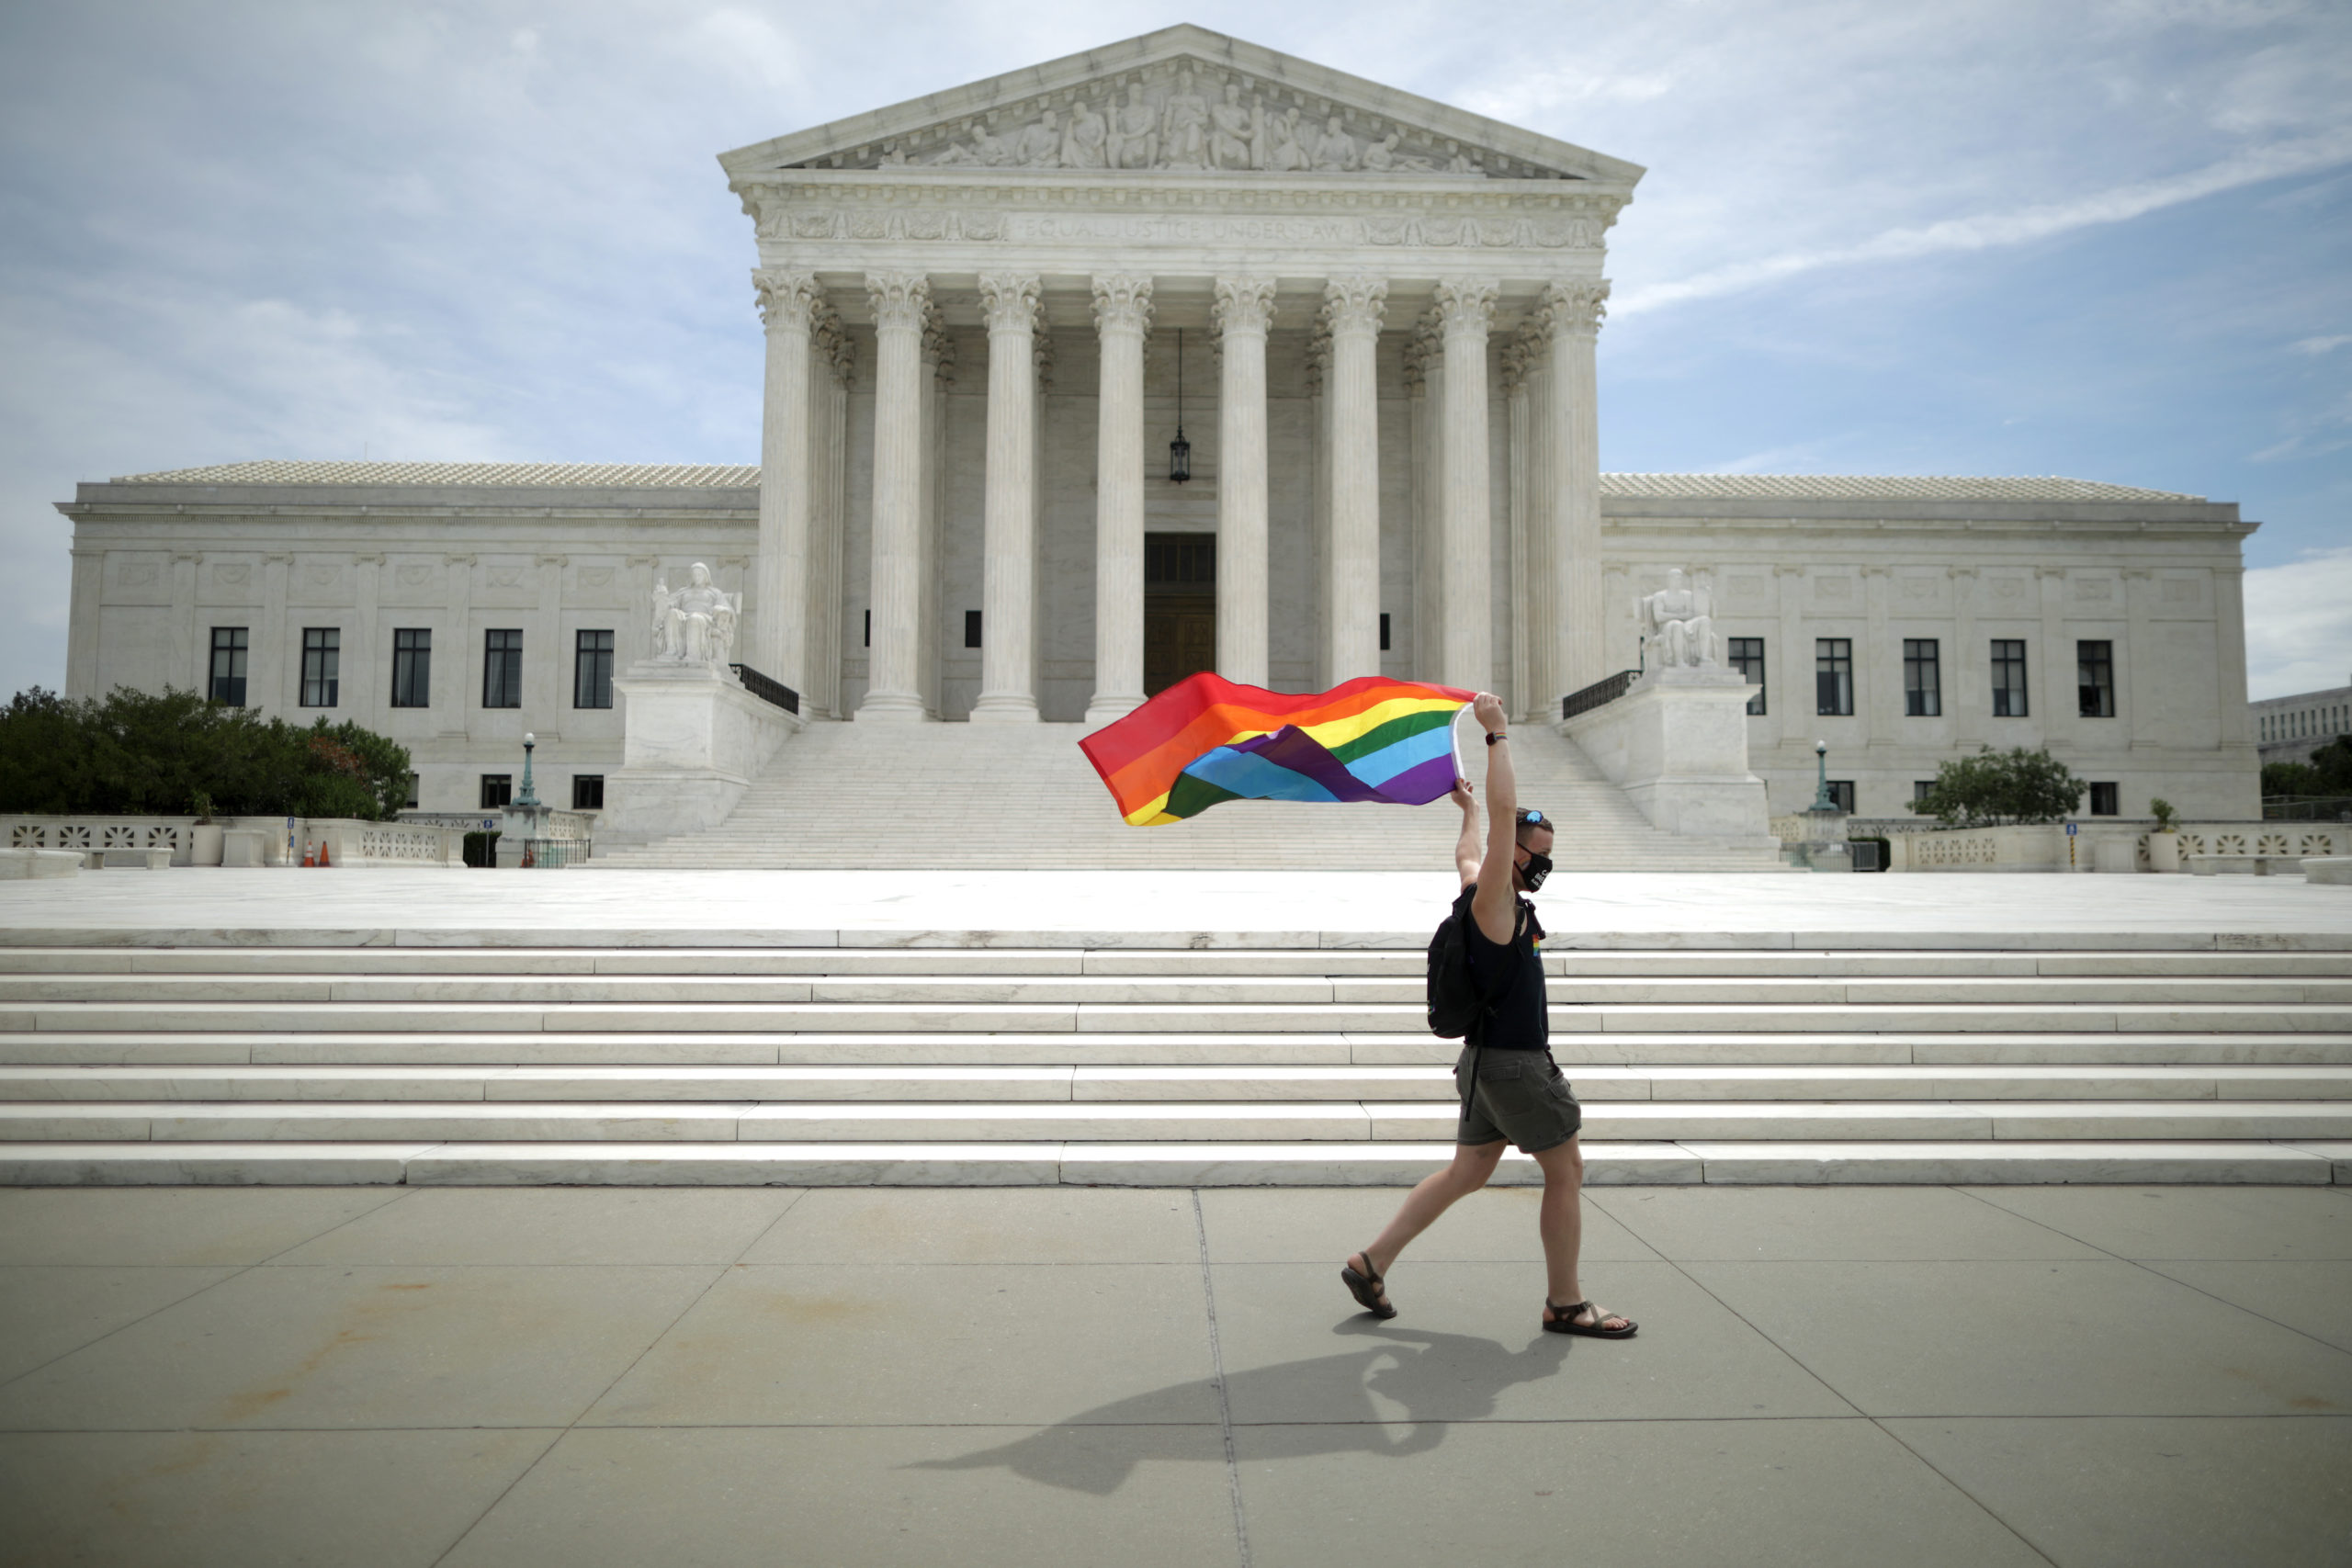 person carrying pride flag in front of government building